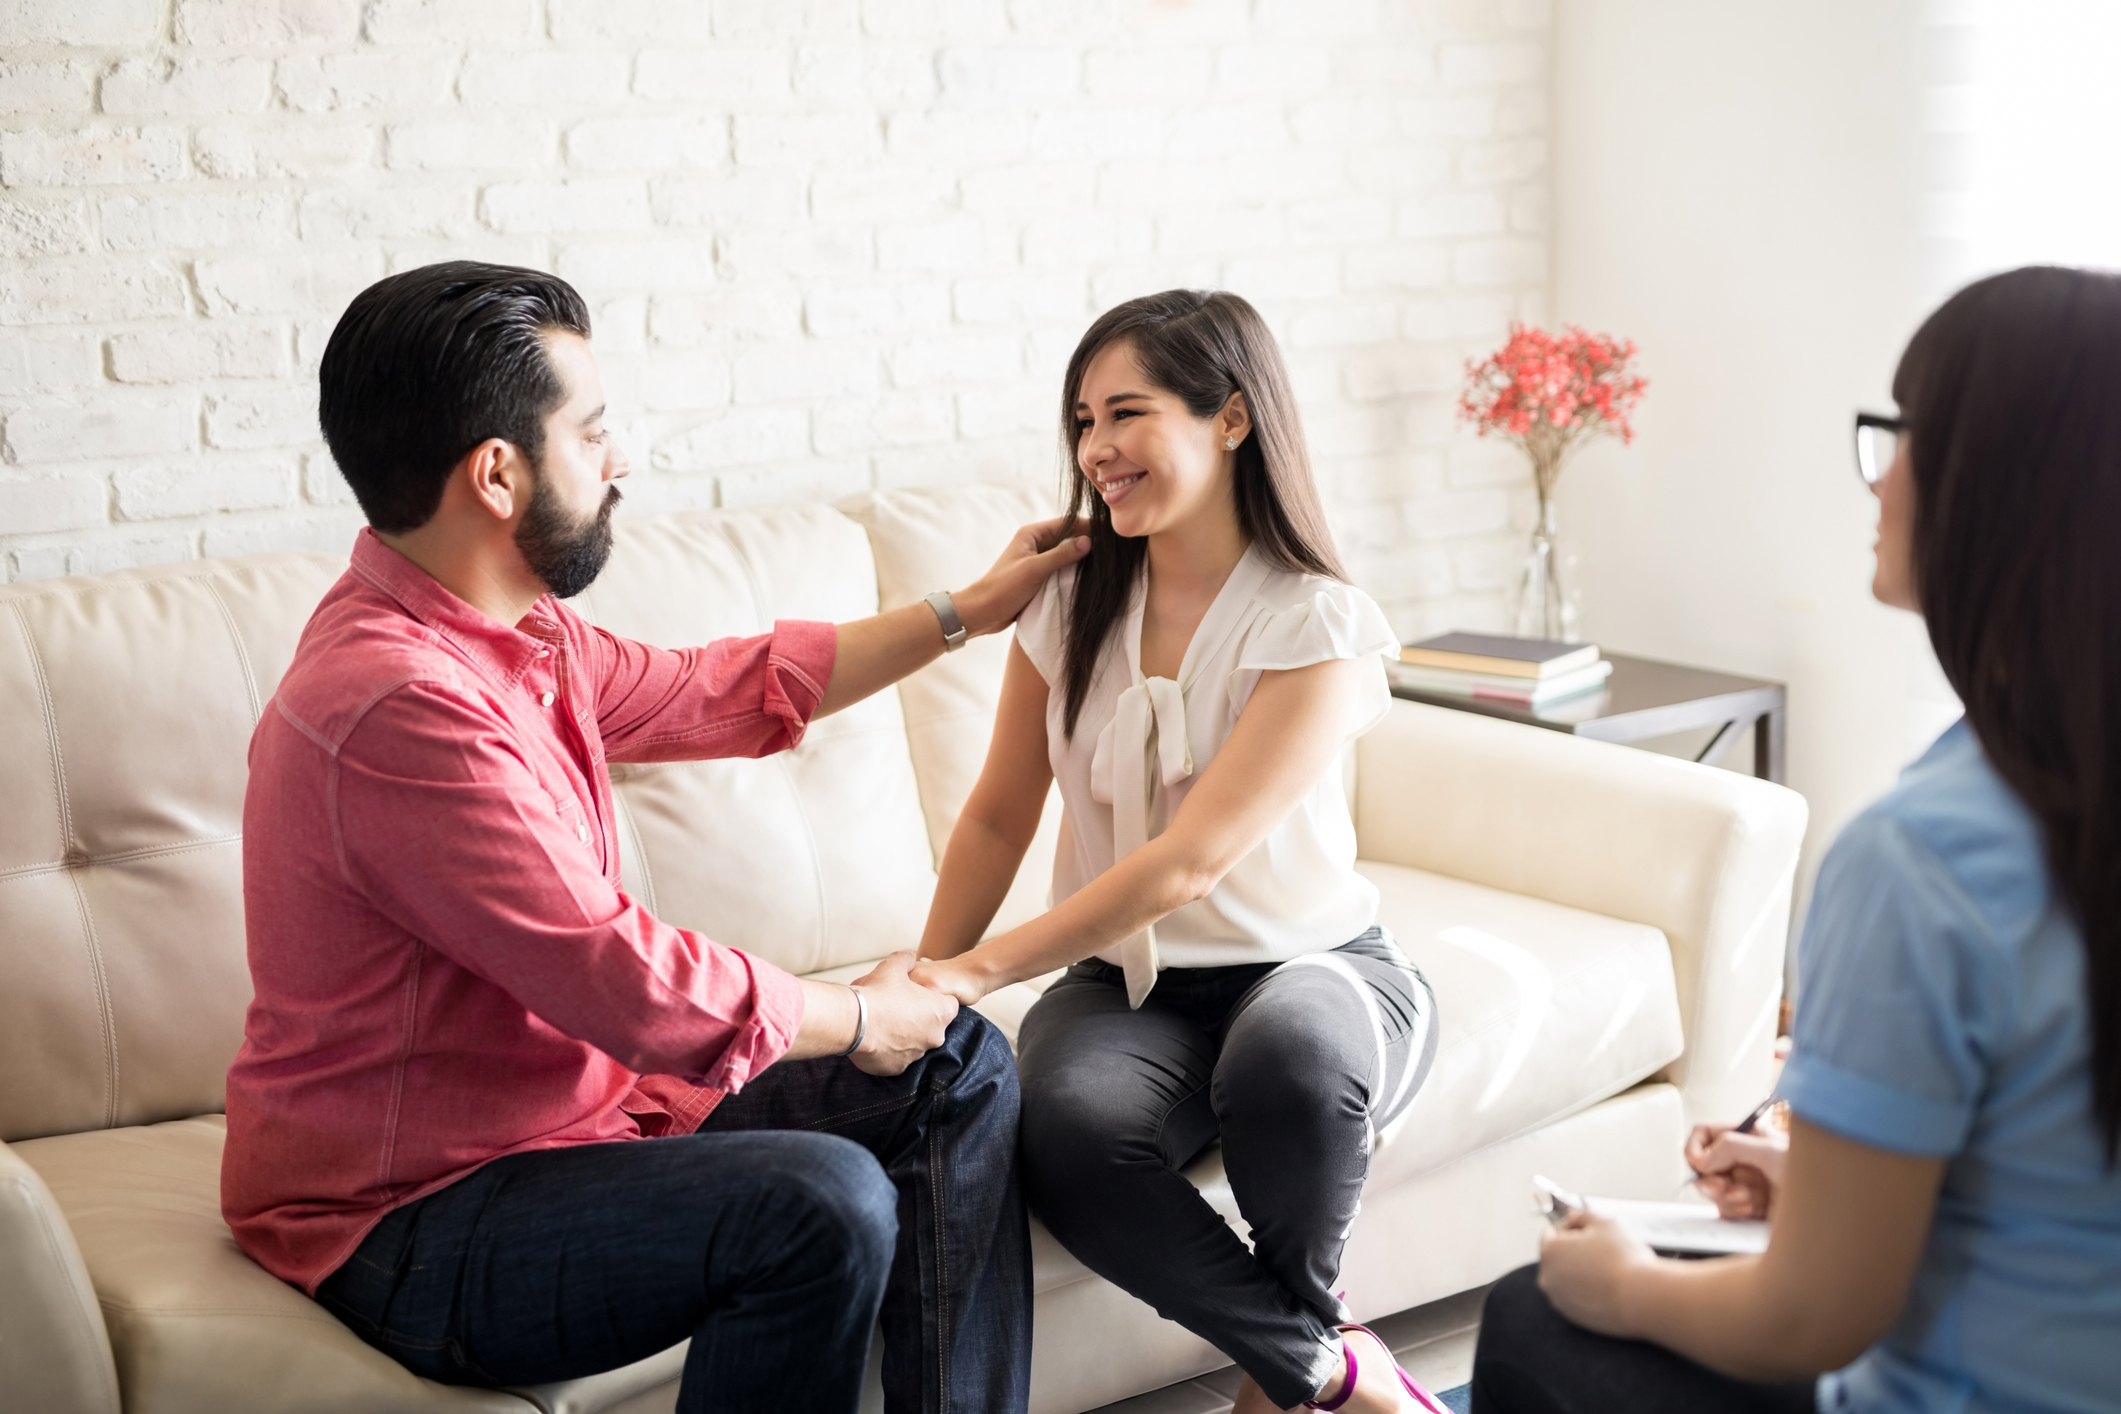 San FranciscoCouples Therapy - Leading SF Bay Area Marriage Counselors and Sex Therapists can help you have the relationship you desire.